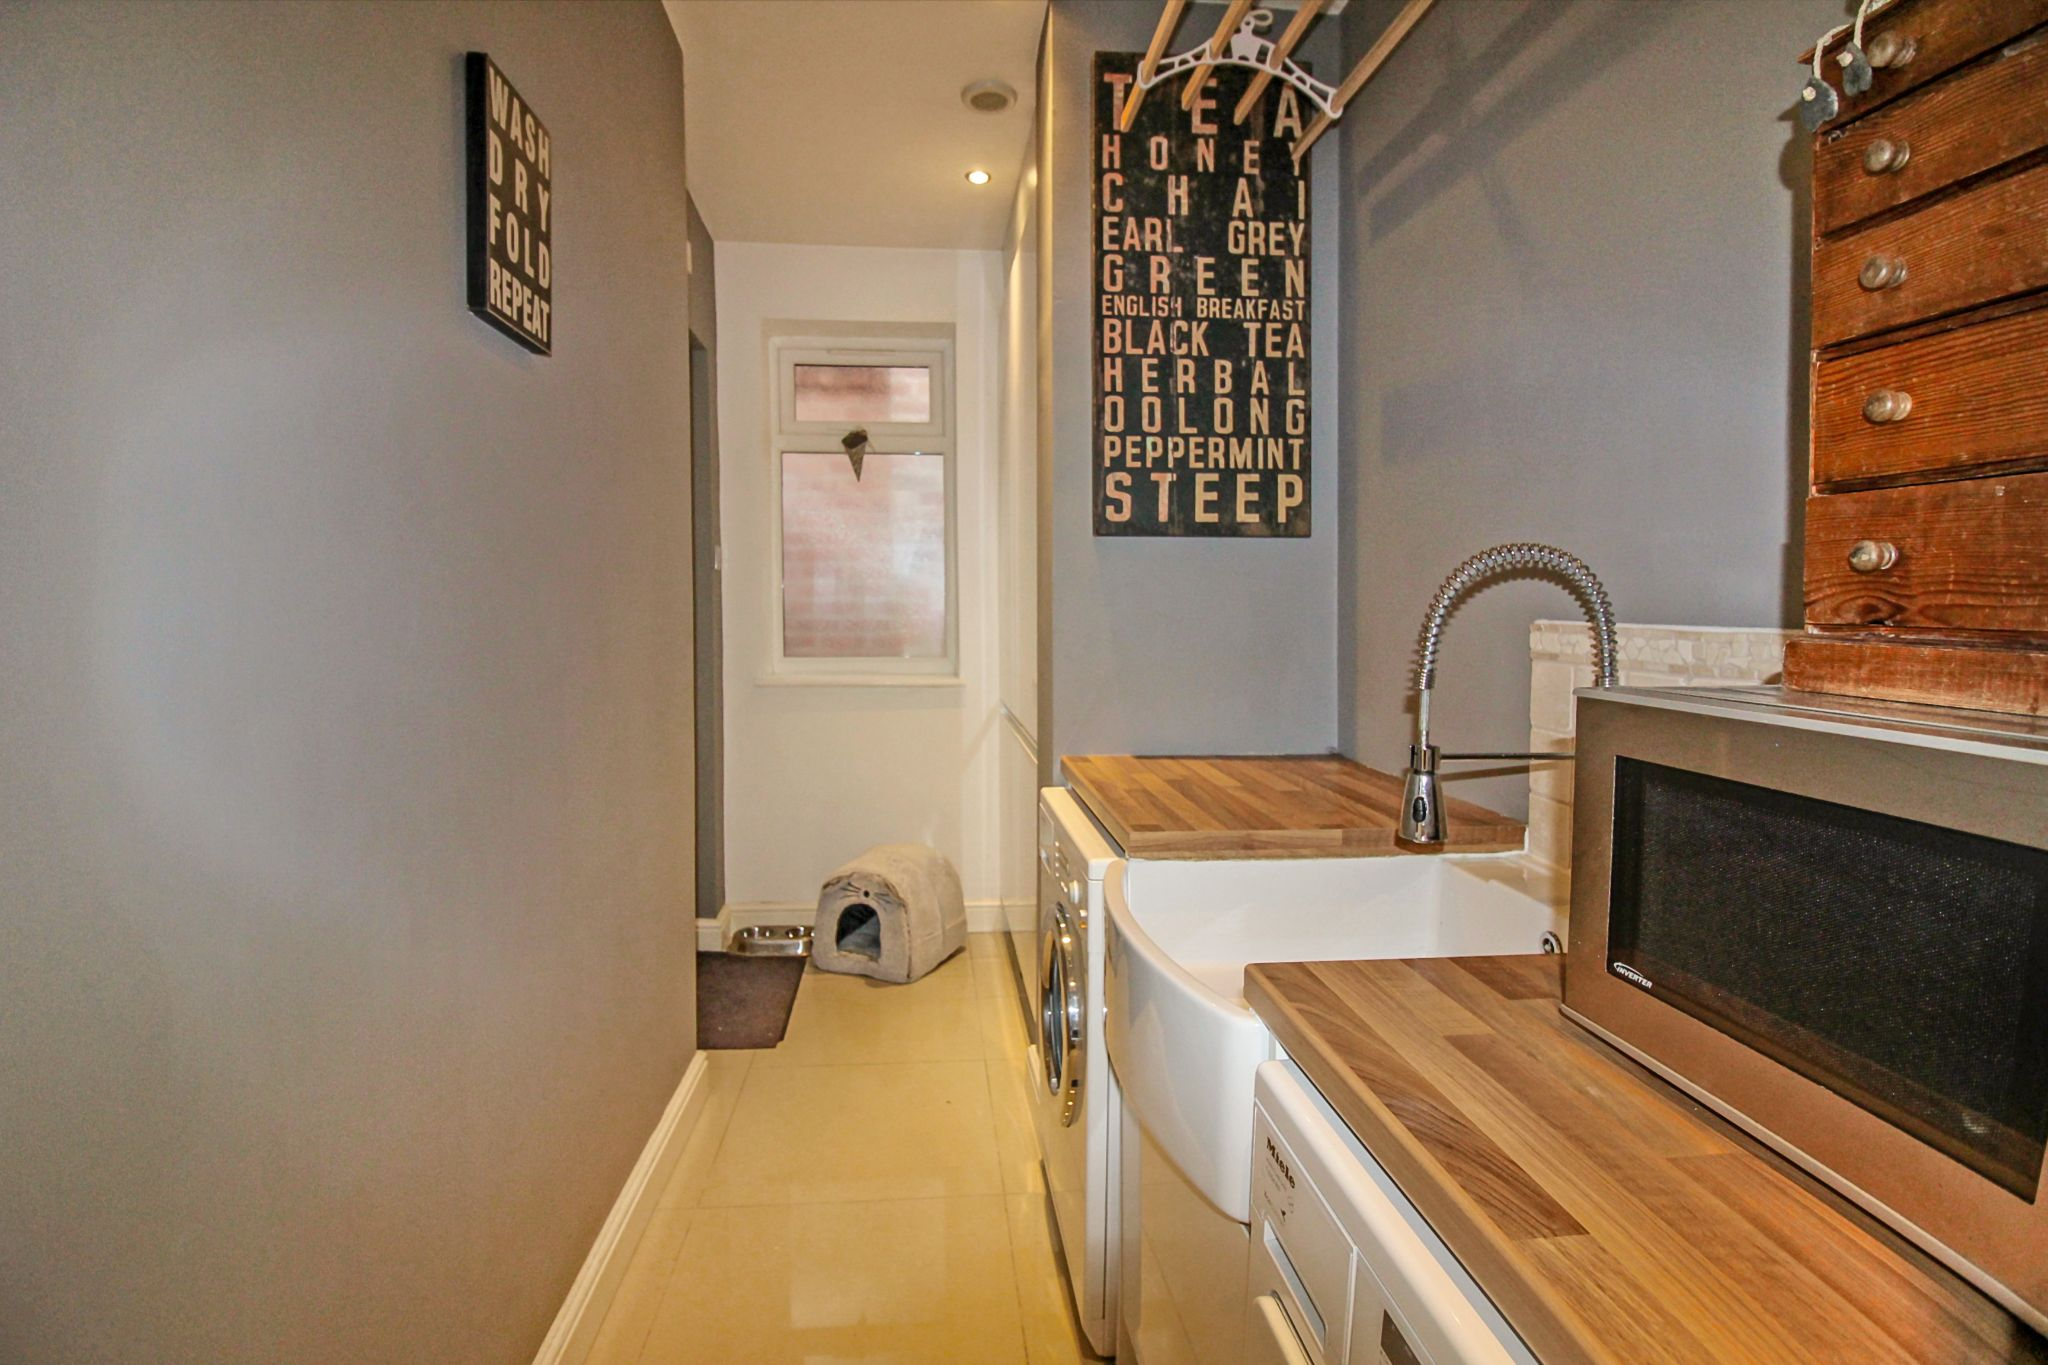 5 bedroom detached house For Sale in Solihull - Photograph 11.